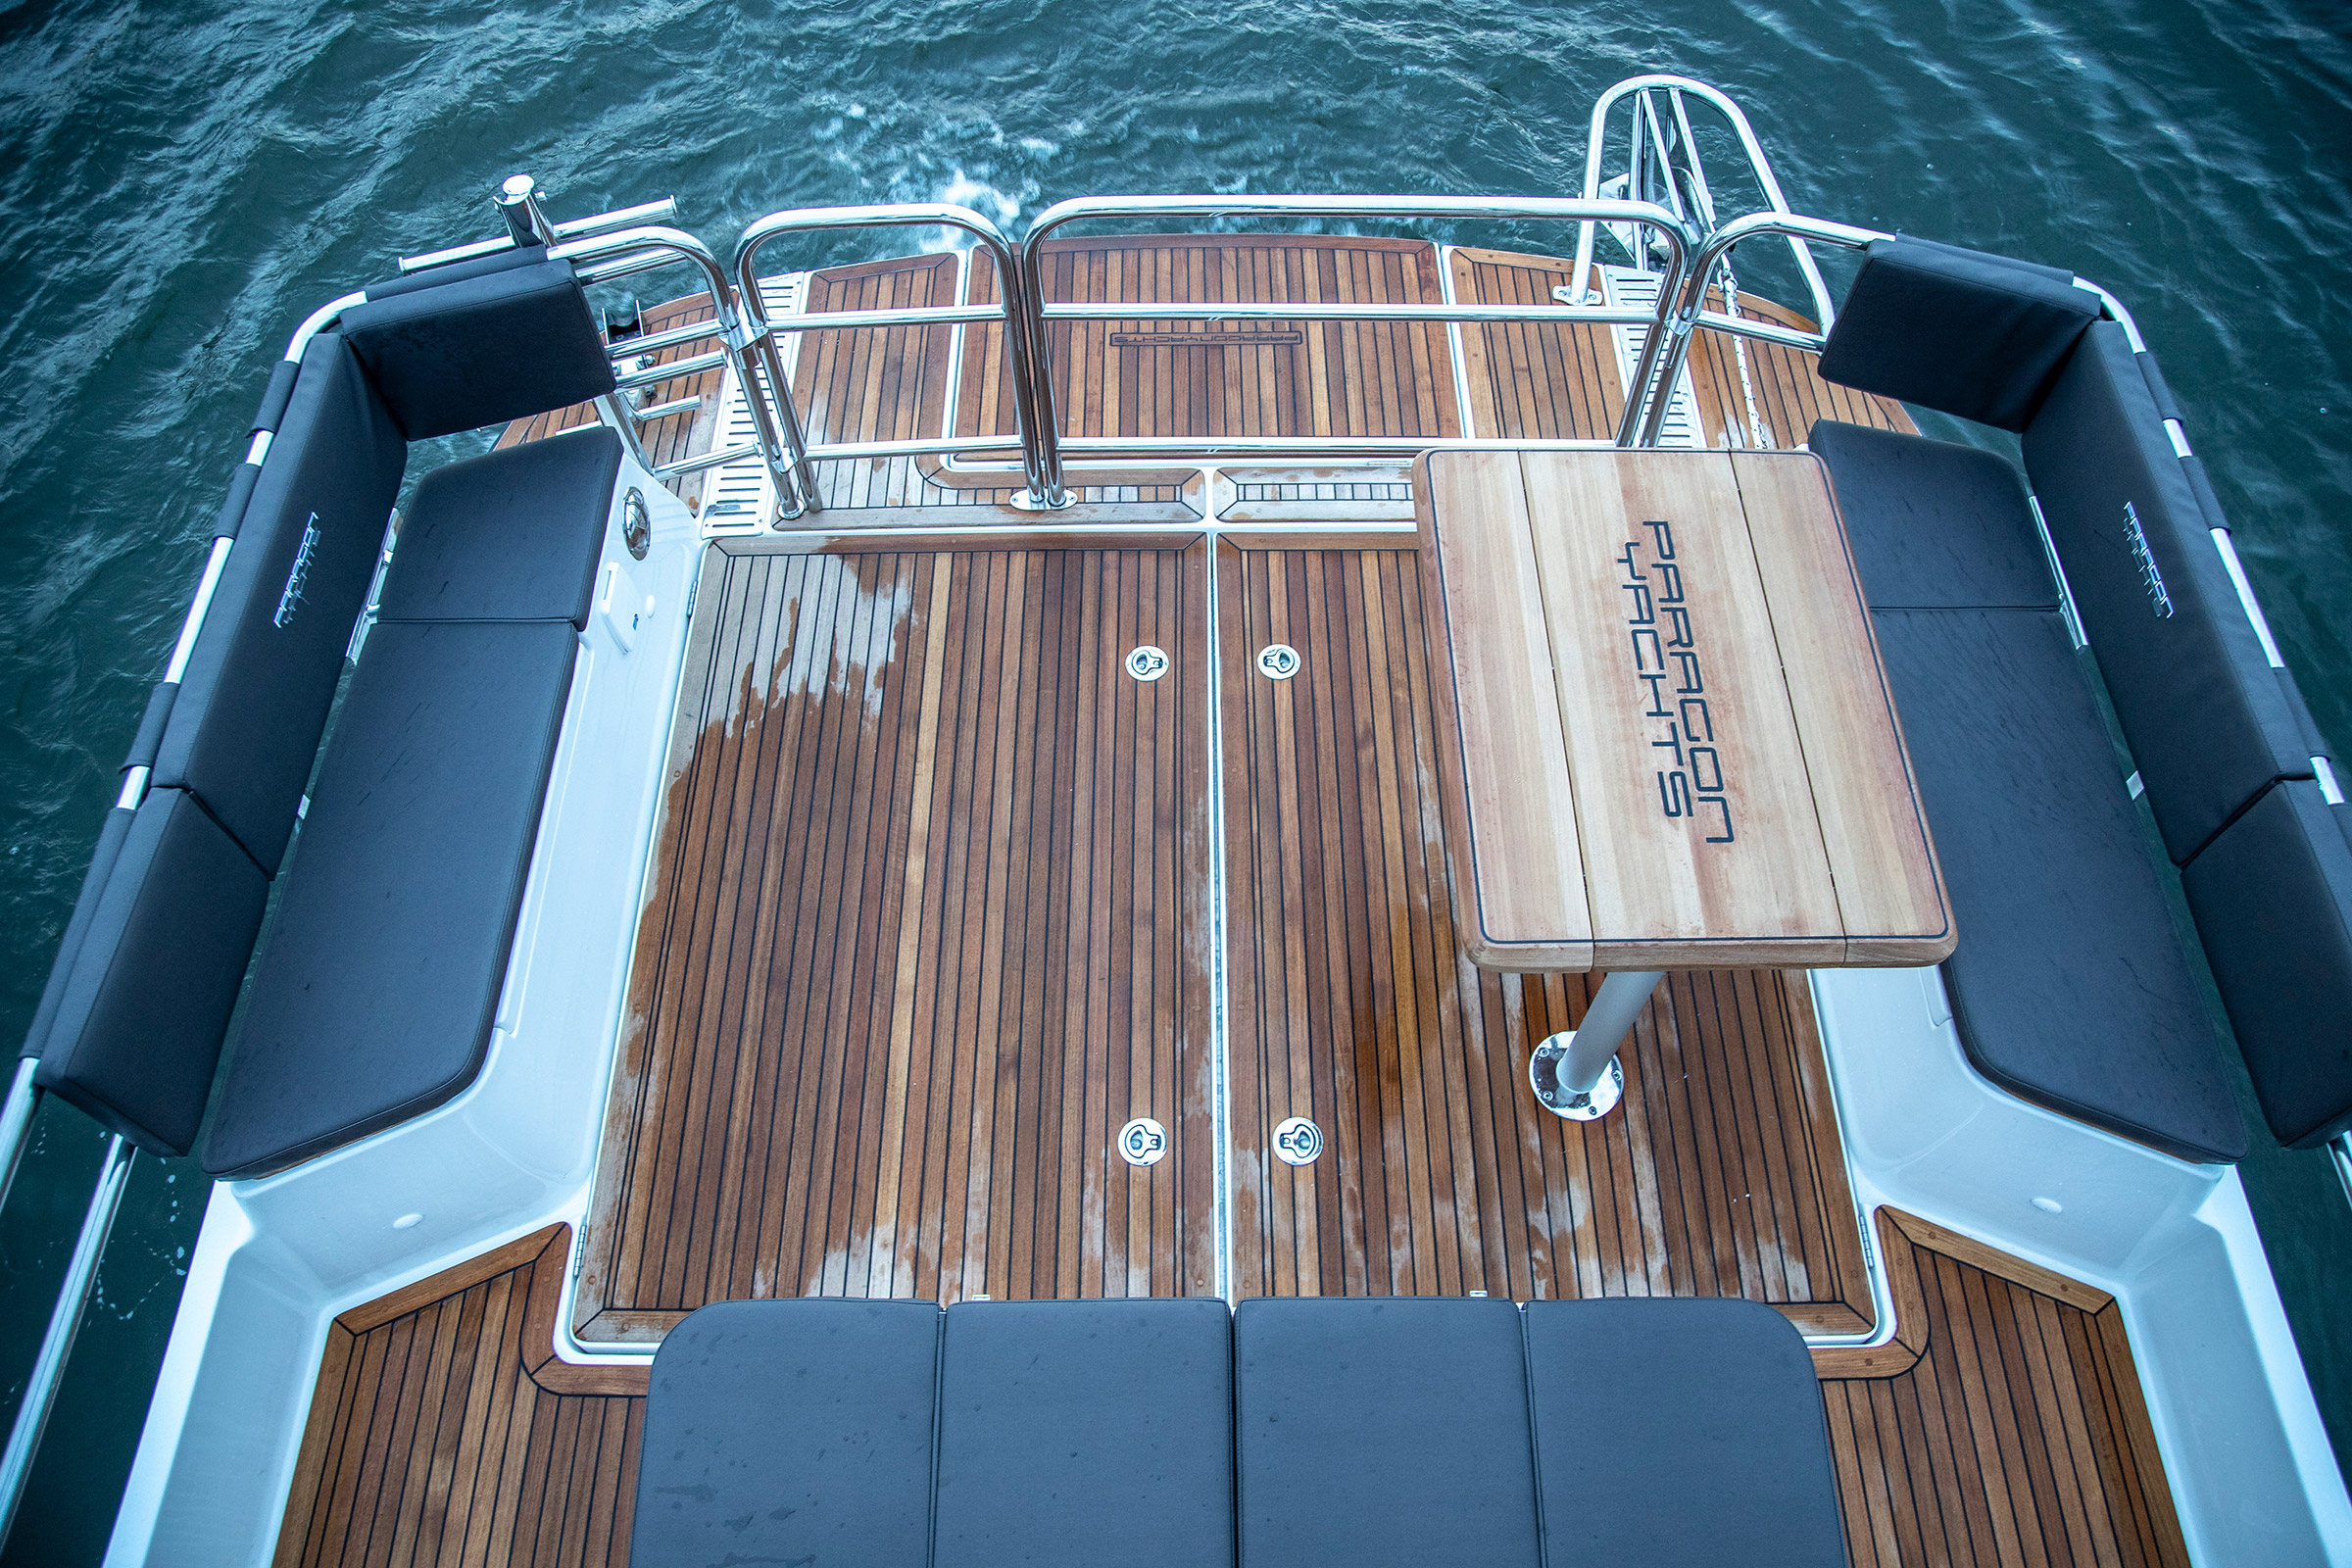 Back of a Paragon 31 Flybridge. A little lounge area with some sofas and a table